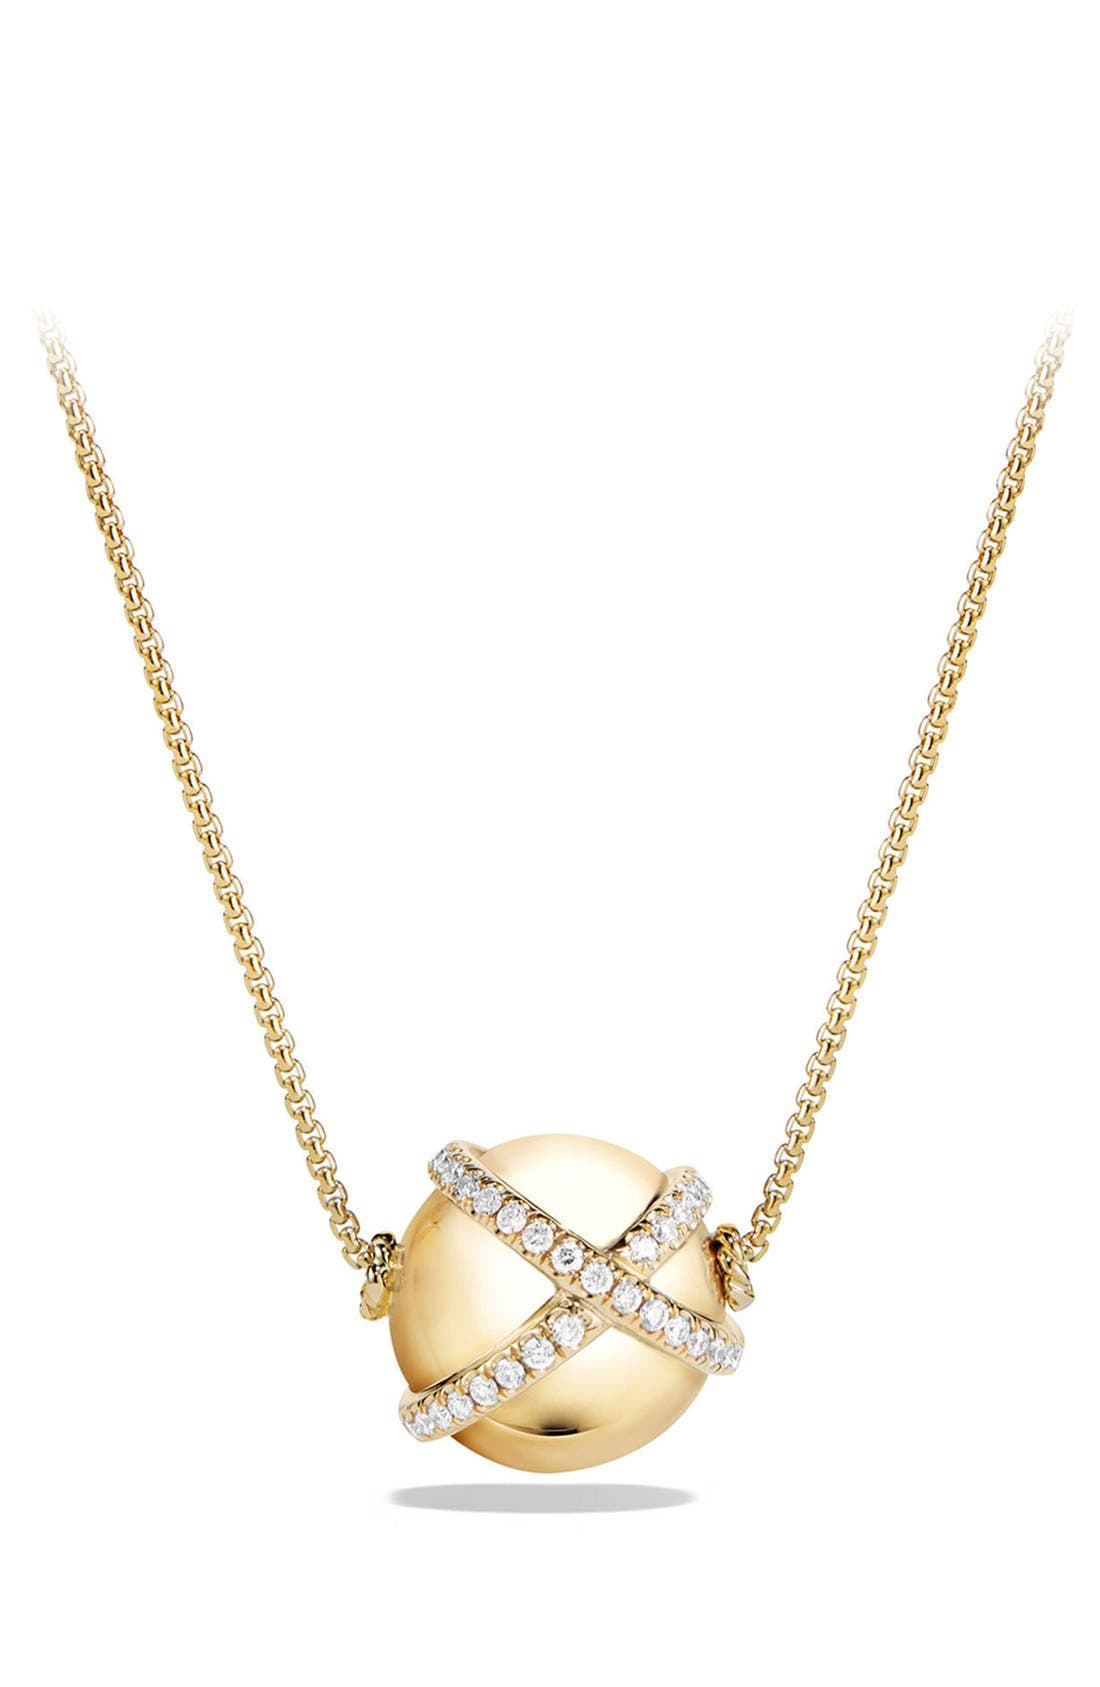 Alternate Image 1 Selected - David Yurman 'Solari' Wrap Pendant Necklace with Pavé Diamonds in 18k Gold